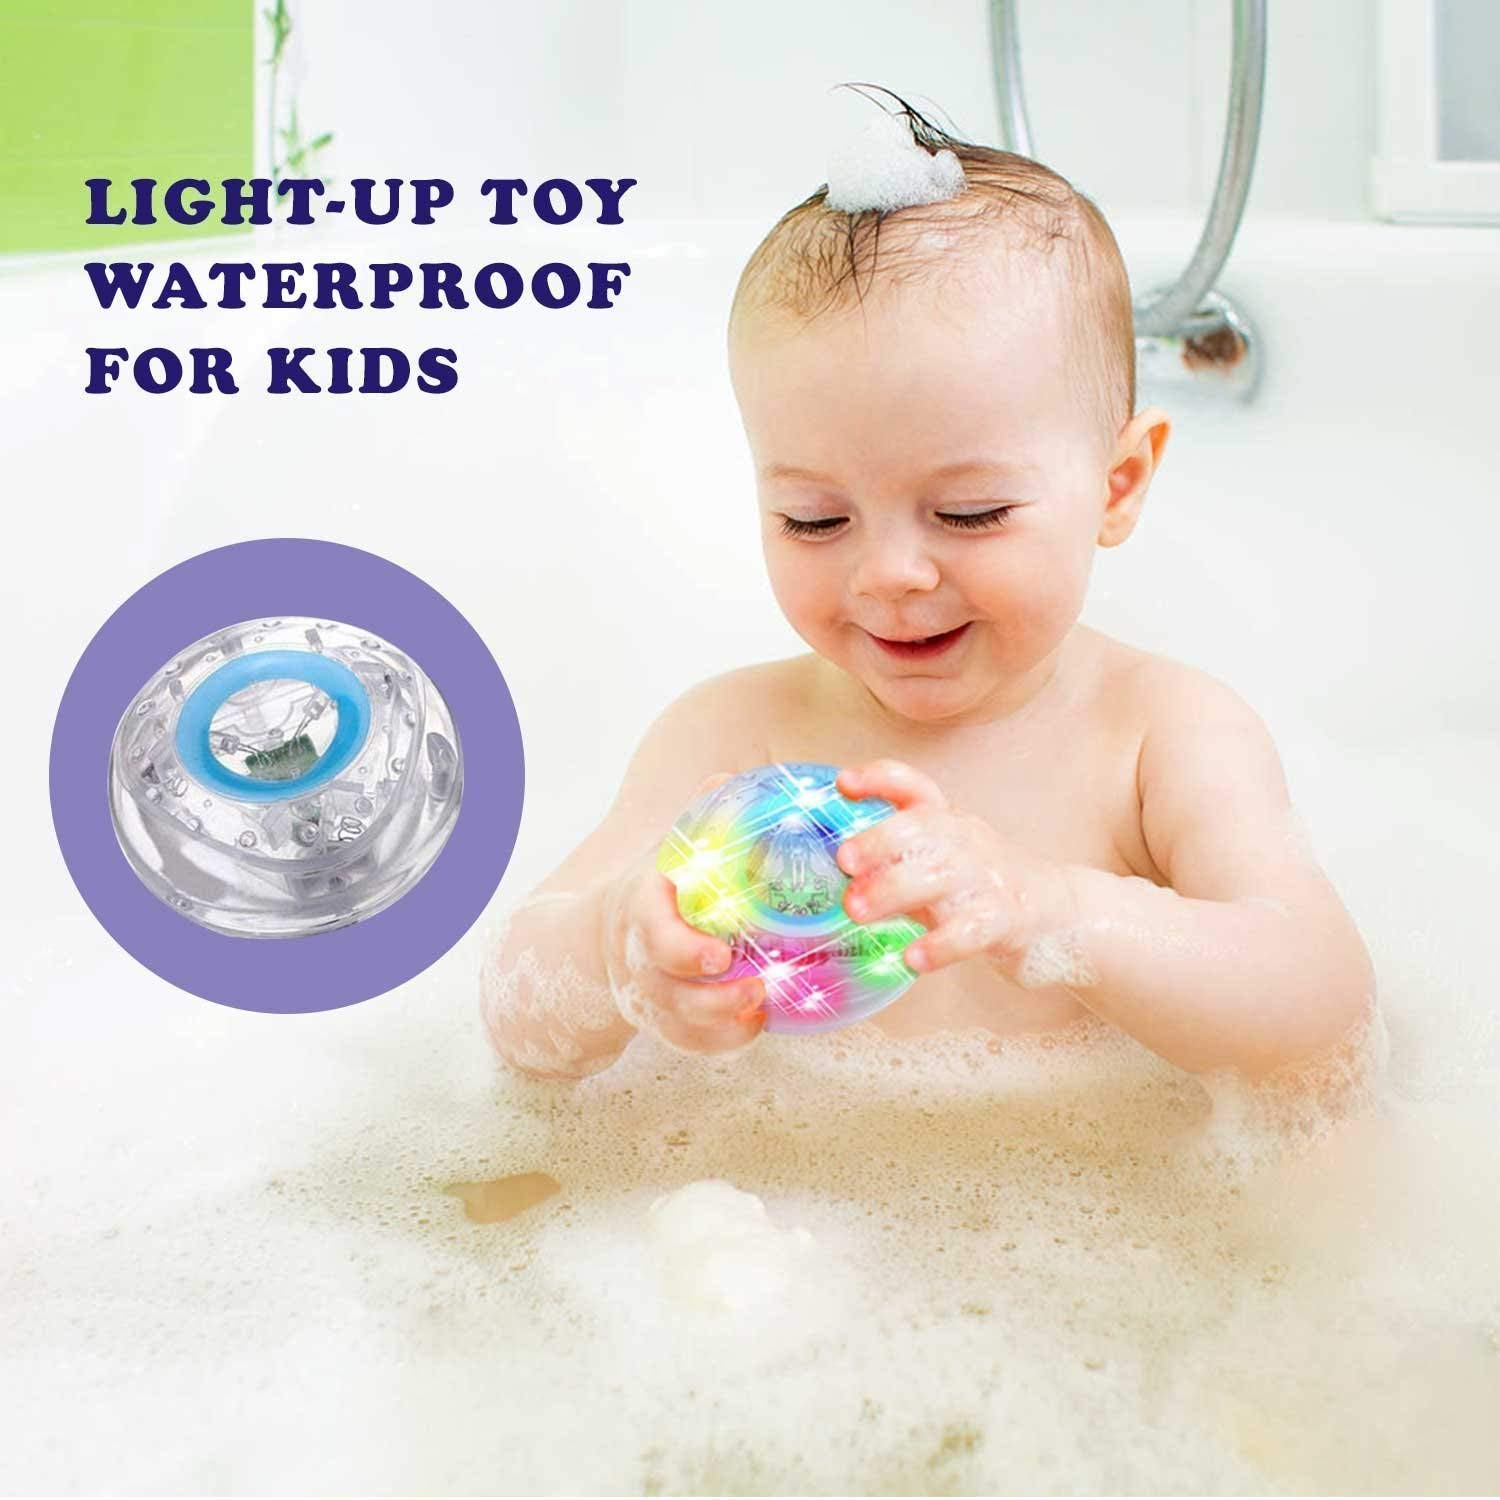 New Caseometry Upgraded Light-up Toy Waterproof for Kids Durable Floating Safe for Baby with Instruction Boys and Girls Toddler Toys Children Prime Water Gift Toys Educational Boat Pool Fun